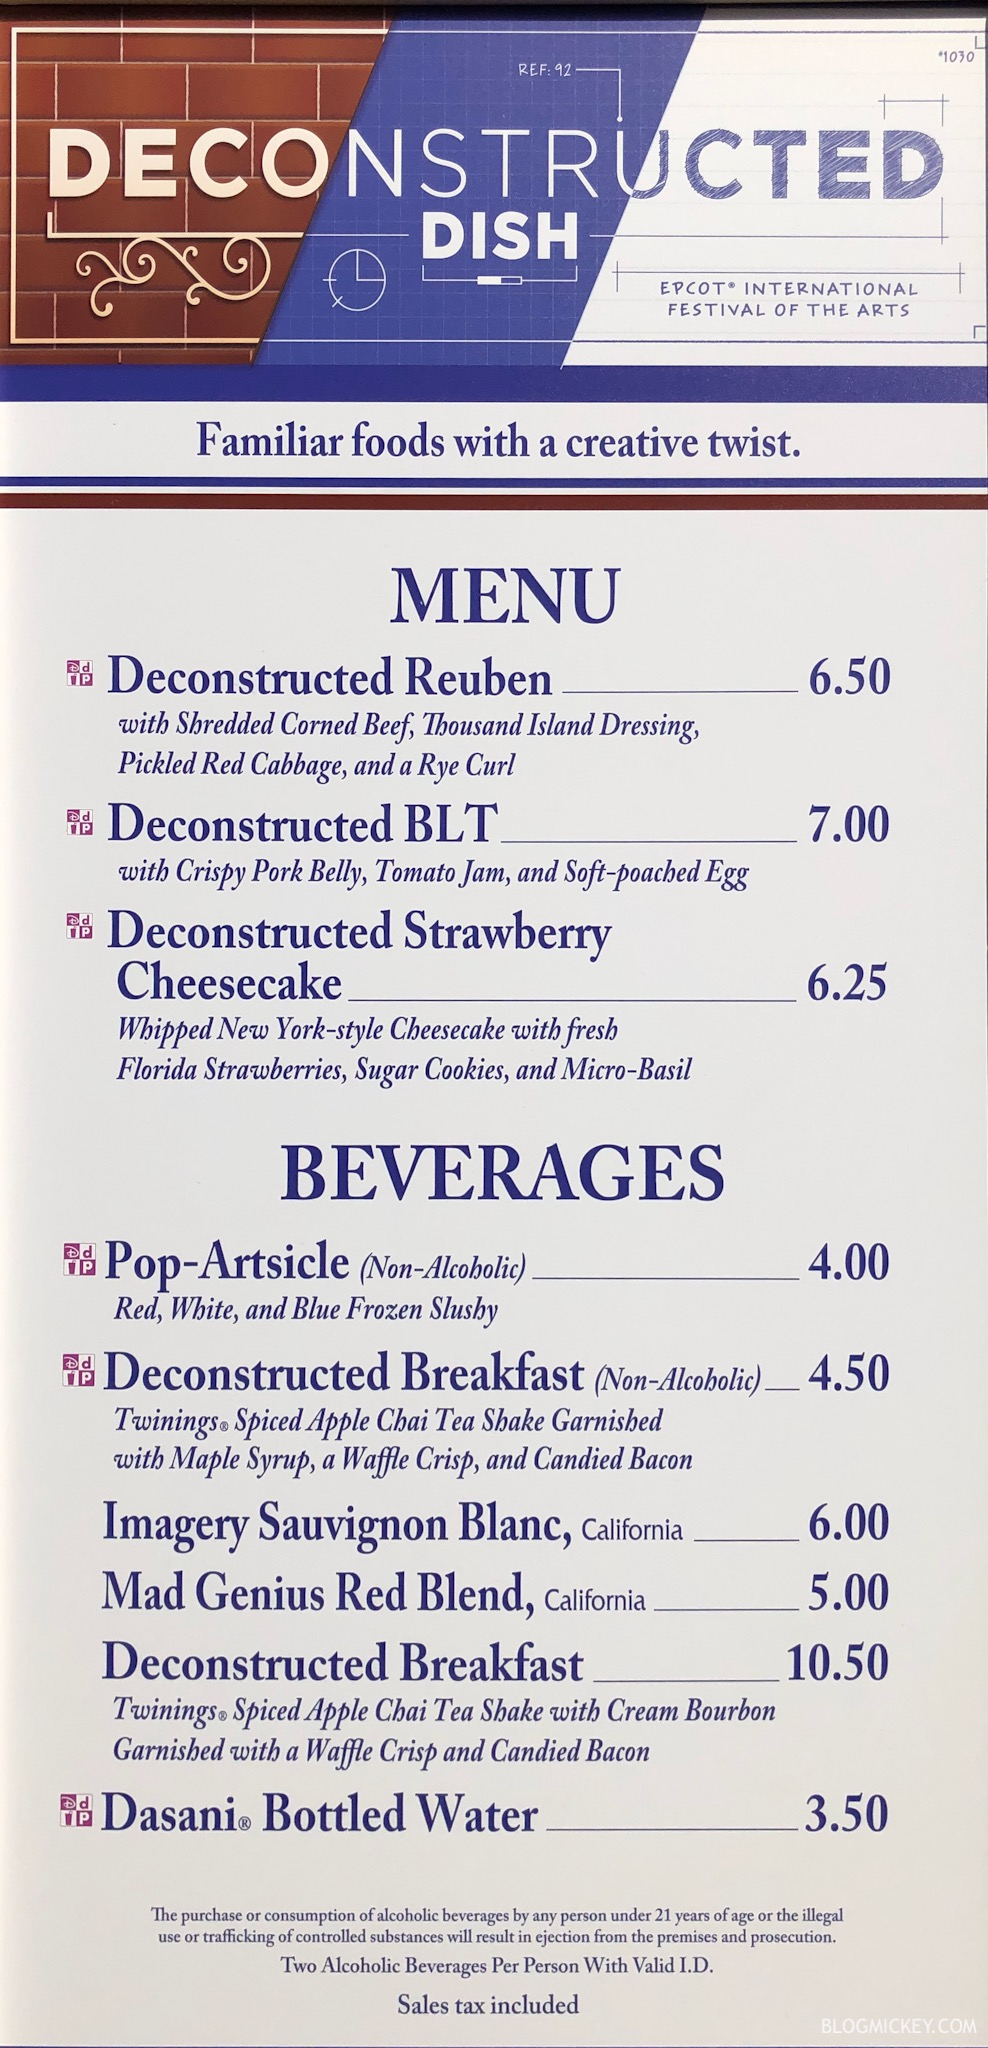 The Deconstructed Dish Menu - 2019 Epcot International Festival of the Arts